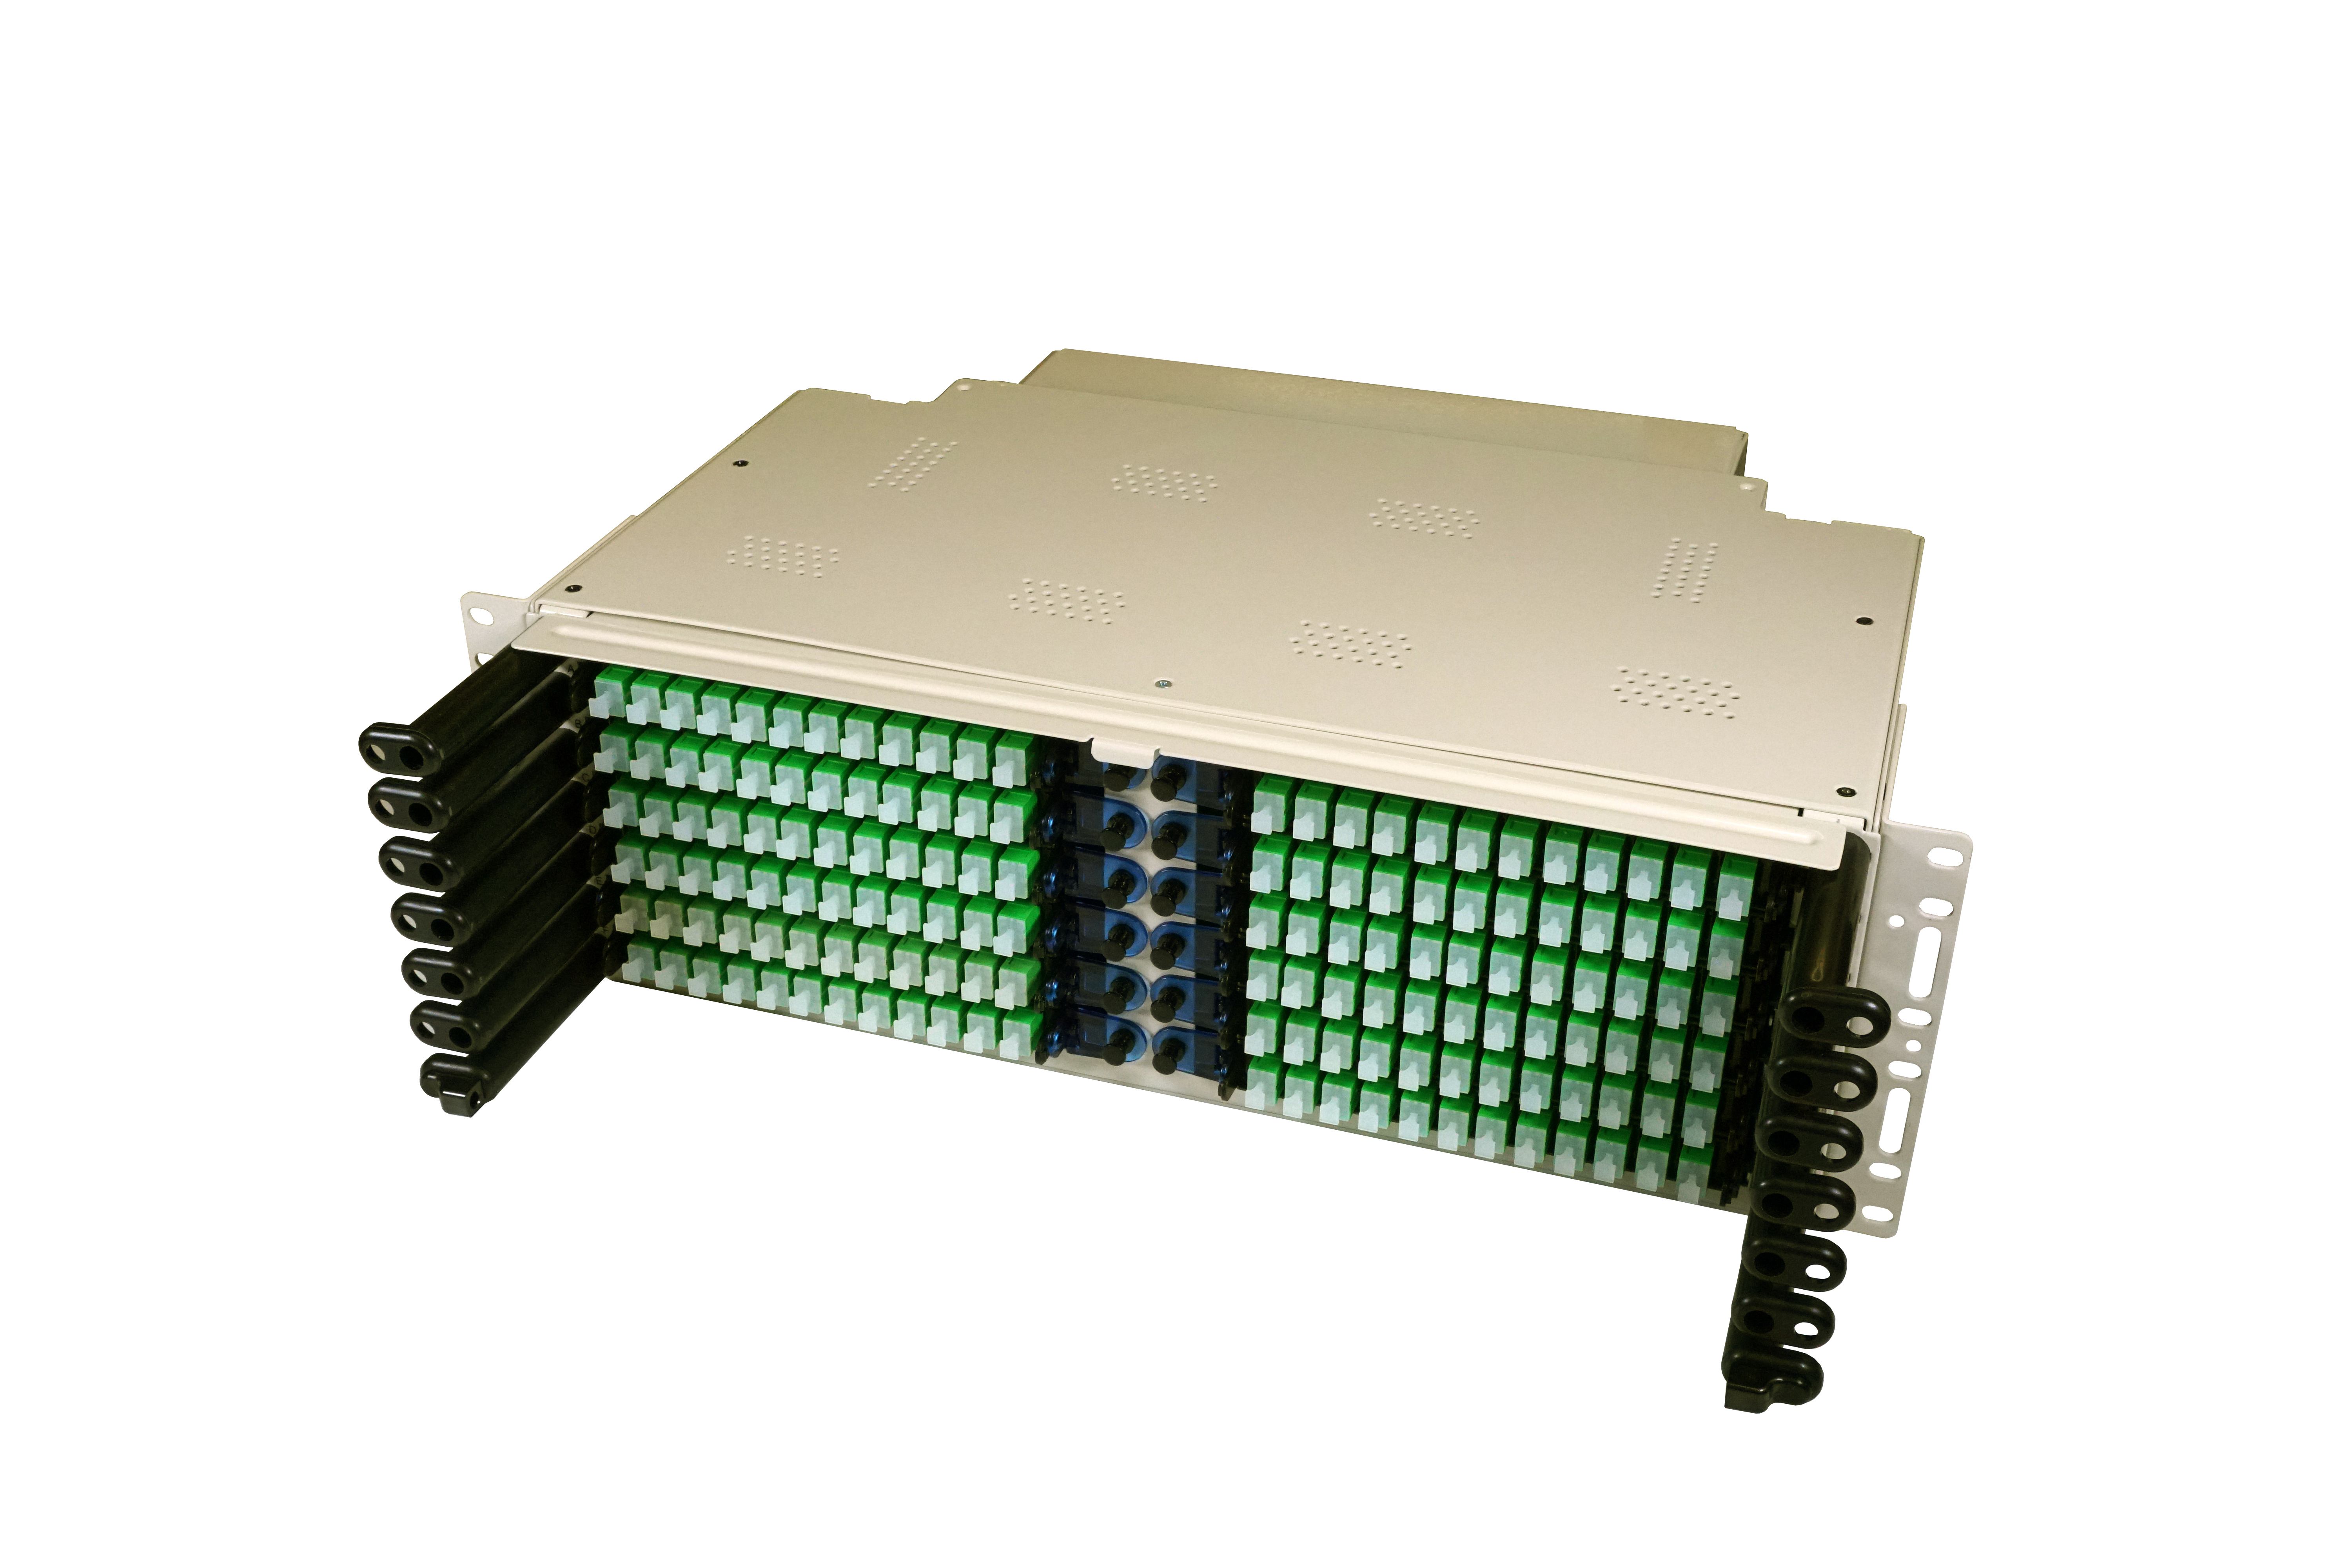 FieldSmart FxMP Optical Component Chassis